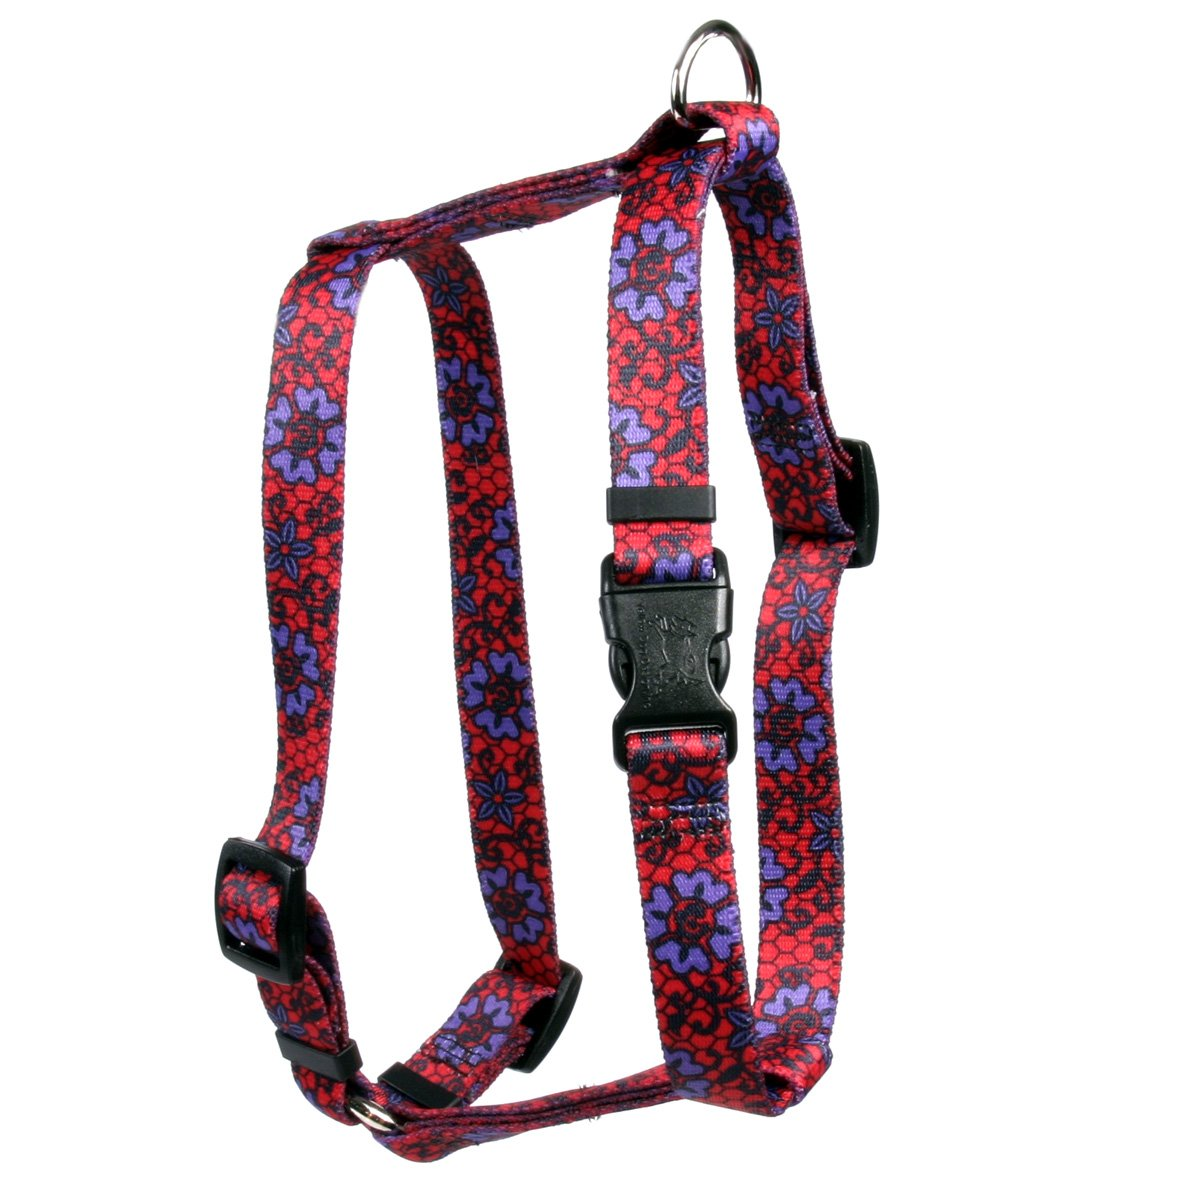 Yellow Dog Design Red Lace Flowers Roman H Dog Harness, Small/Medium-3/4 Wide fits Chest of 14 to 20'' by Yellow Dog Design